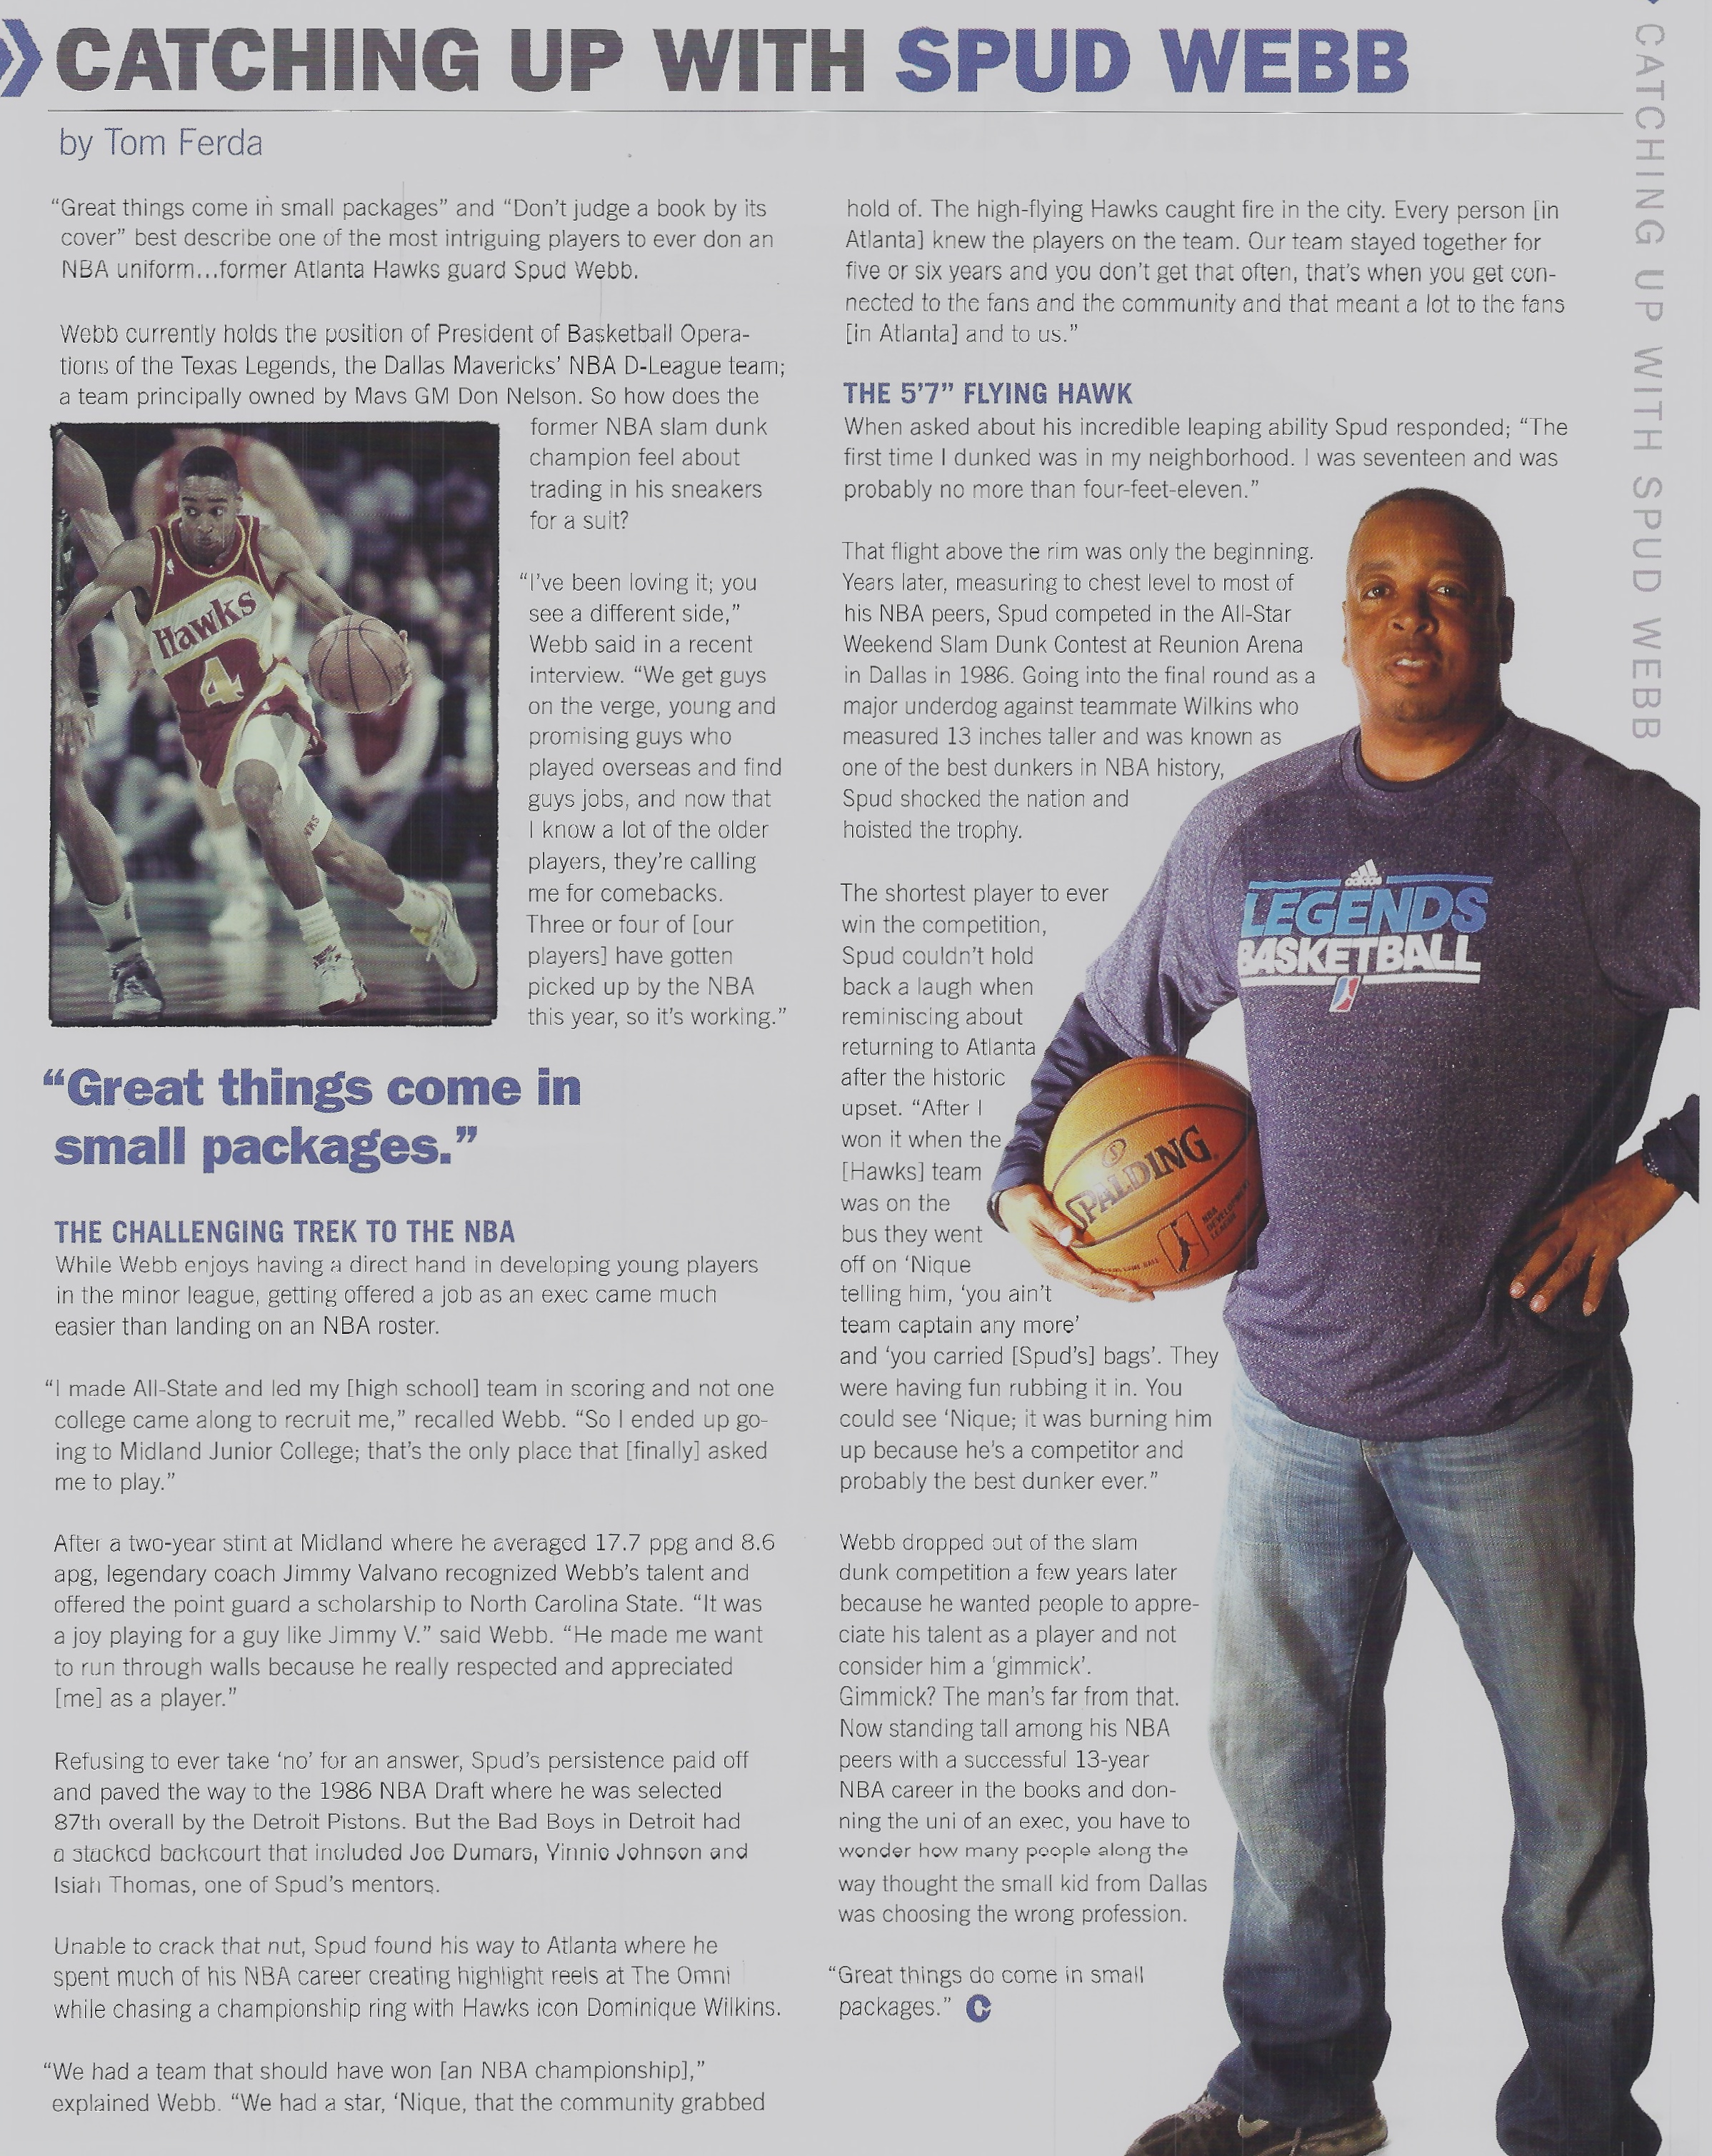 Catching up With Spud Webb